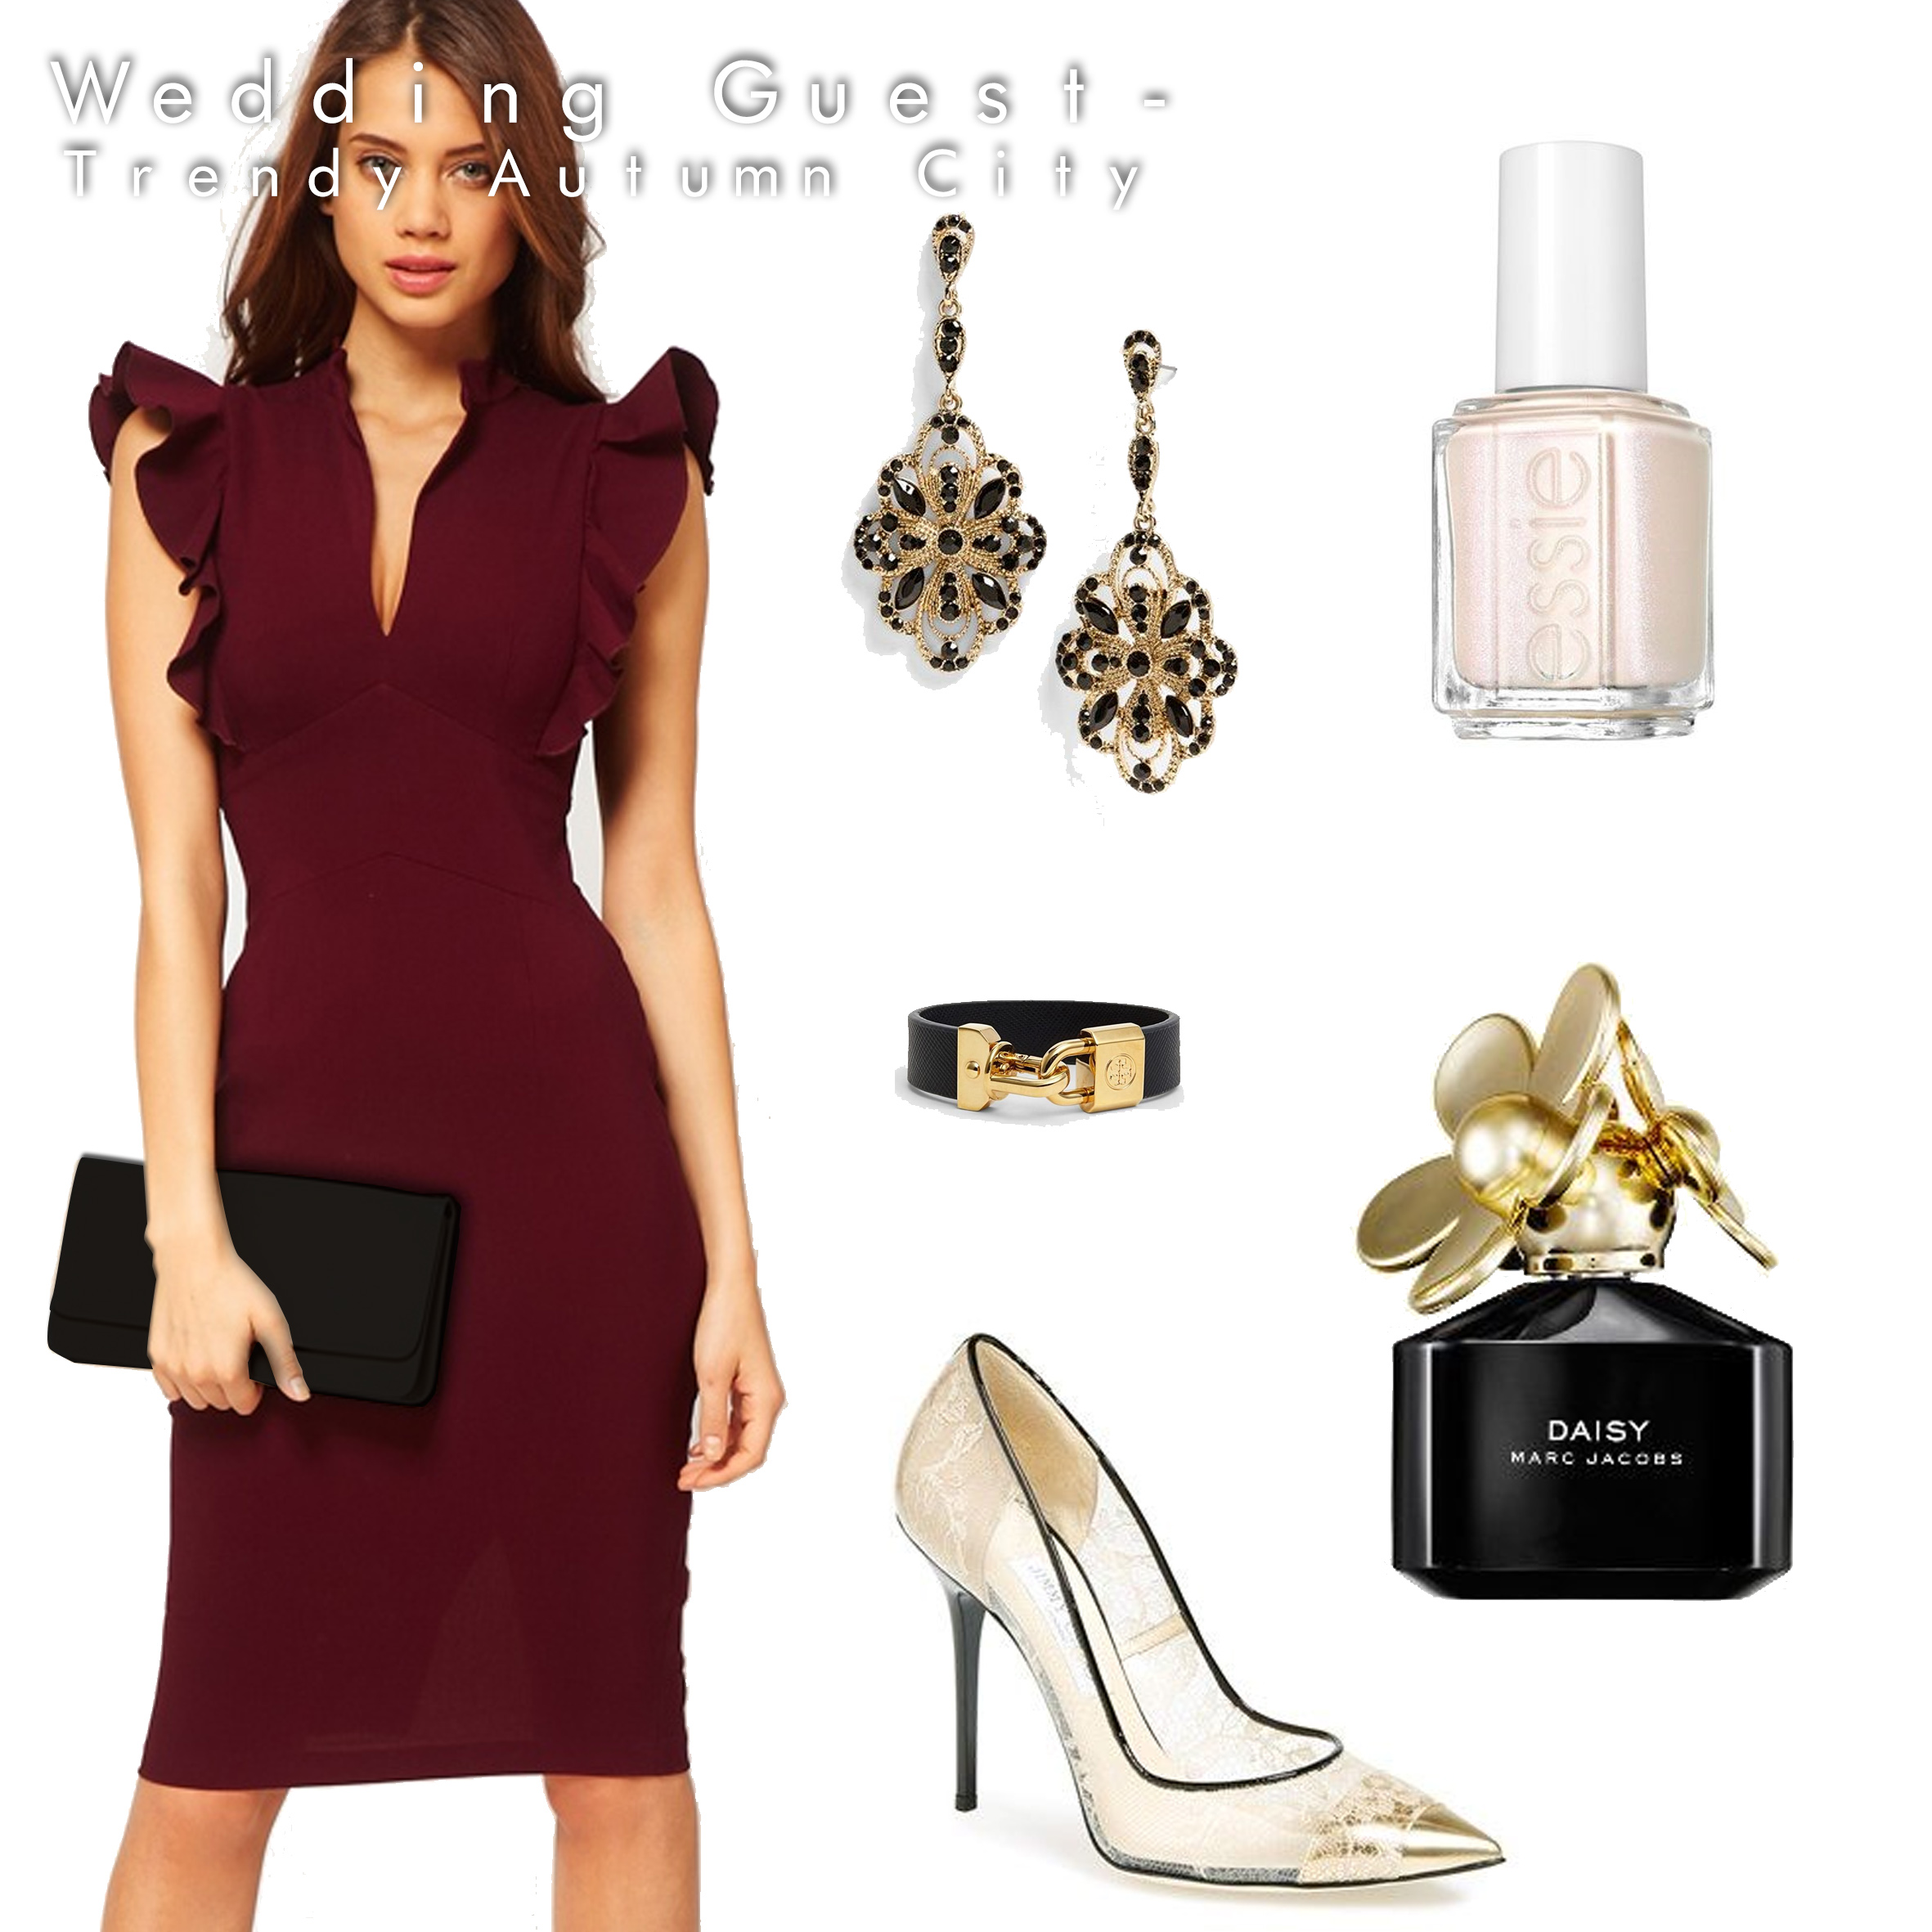 wedding guest outfit advice wedding guest dress Wedding guest outfit for autumn